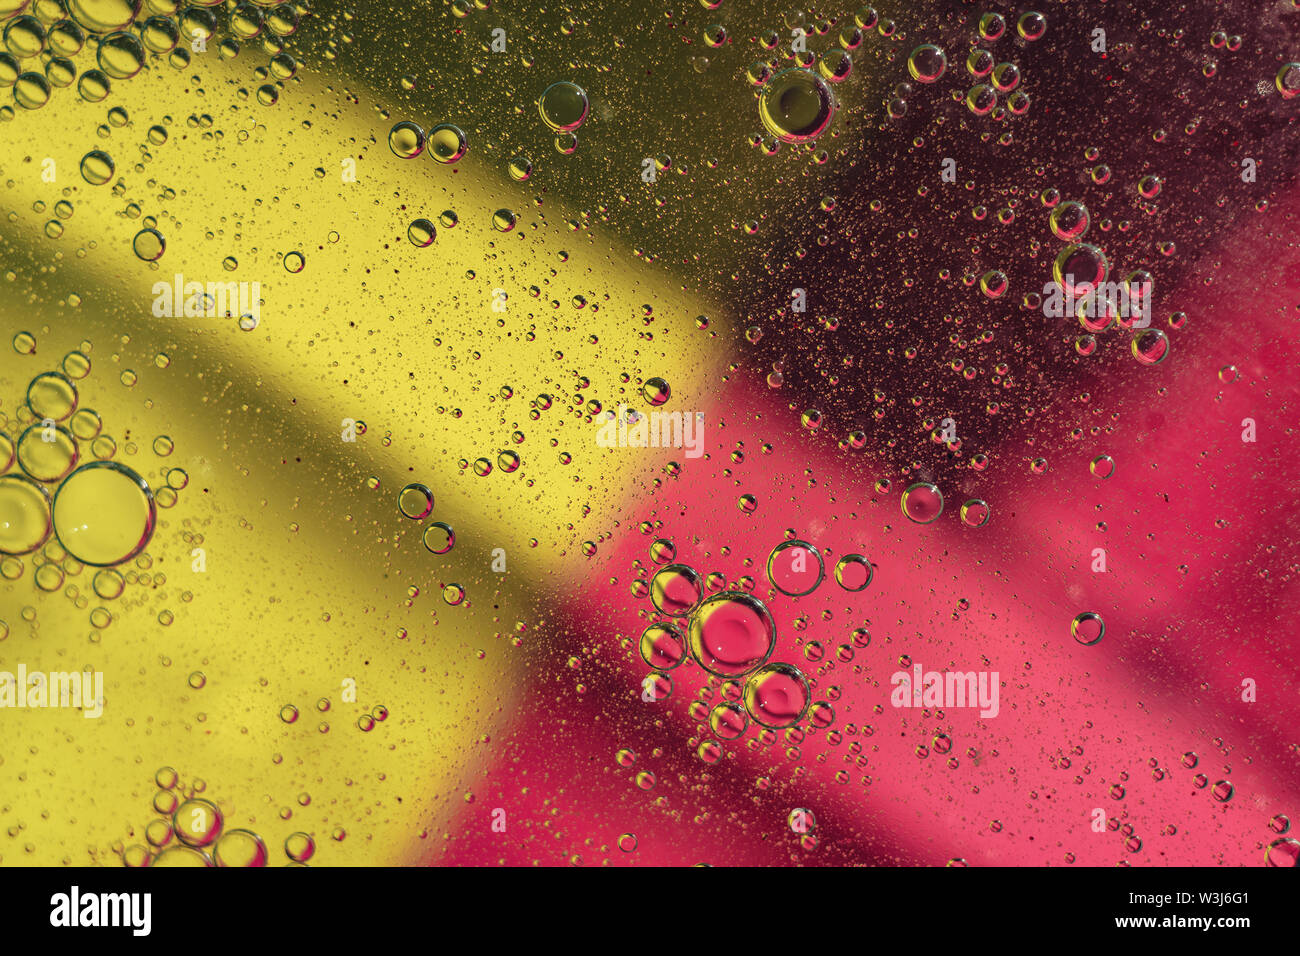 Beautiful color abstraction background close up. - Stock Image